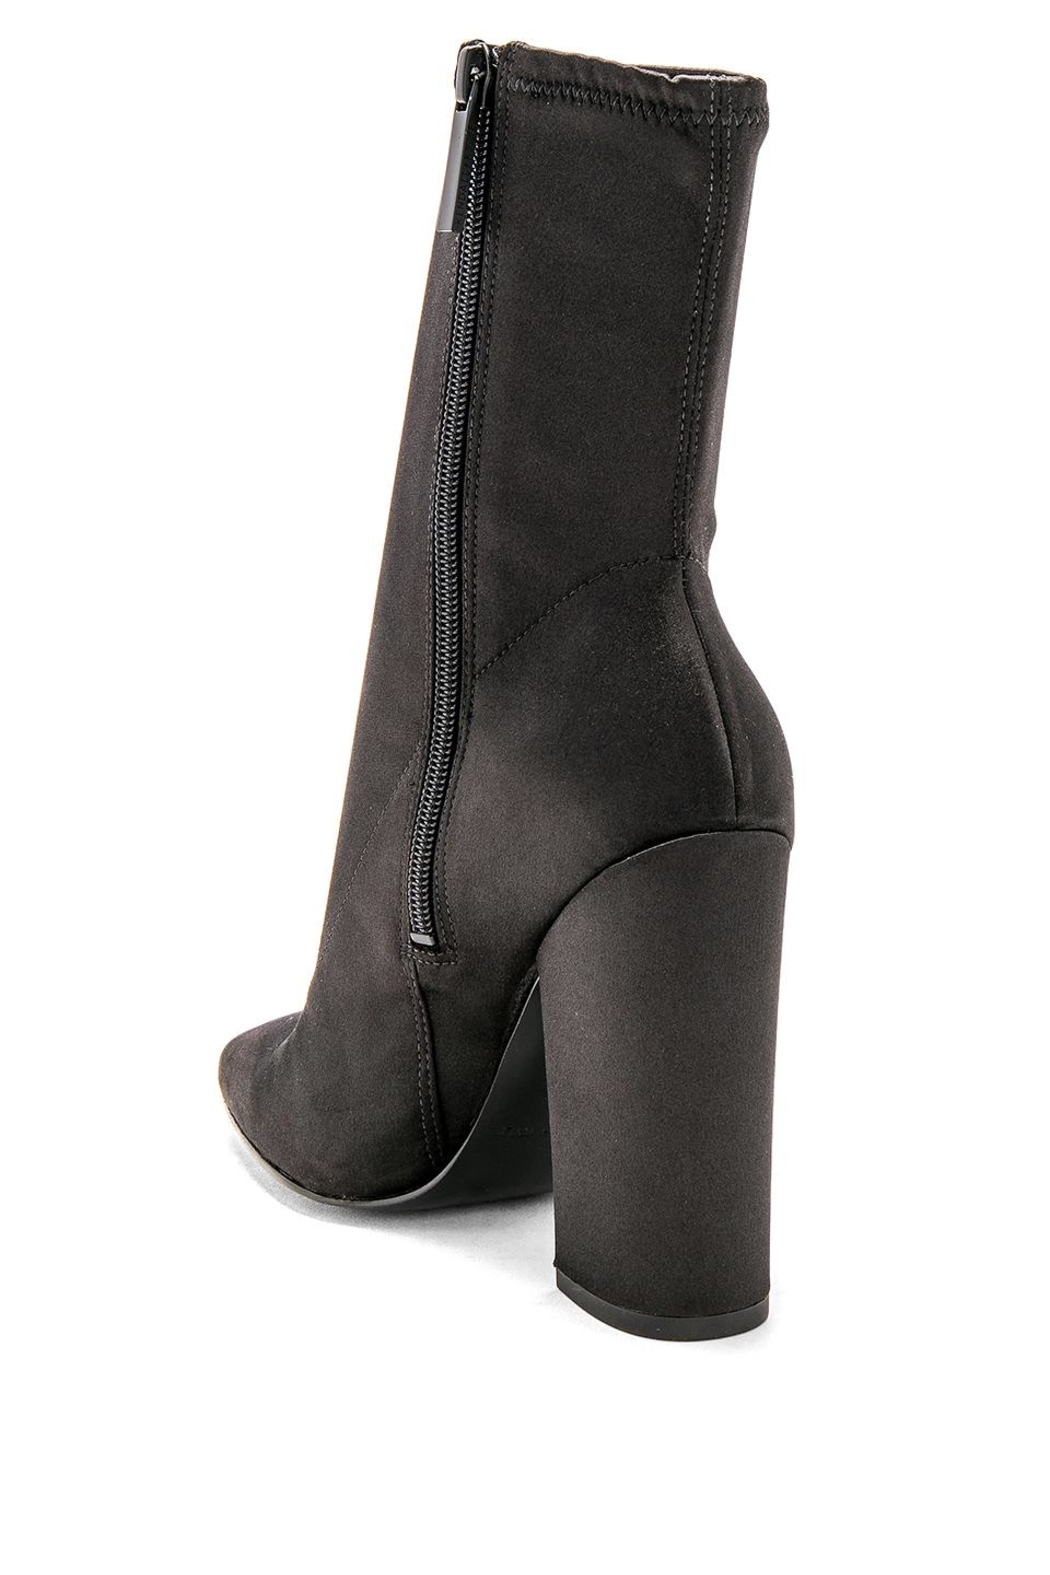 Kendall + Kylie Hailey Bootie - Back Cropped Image